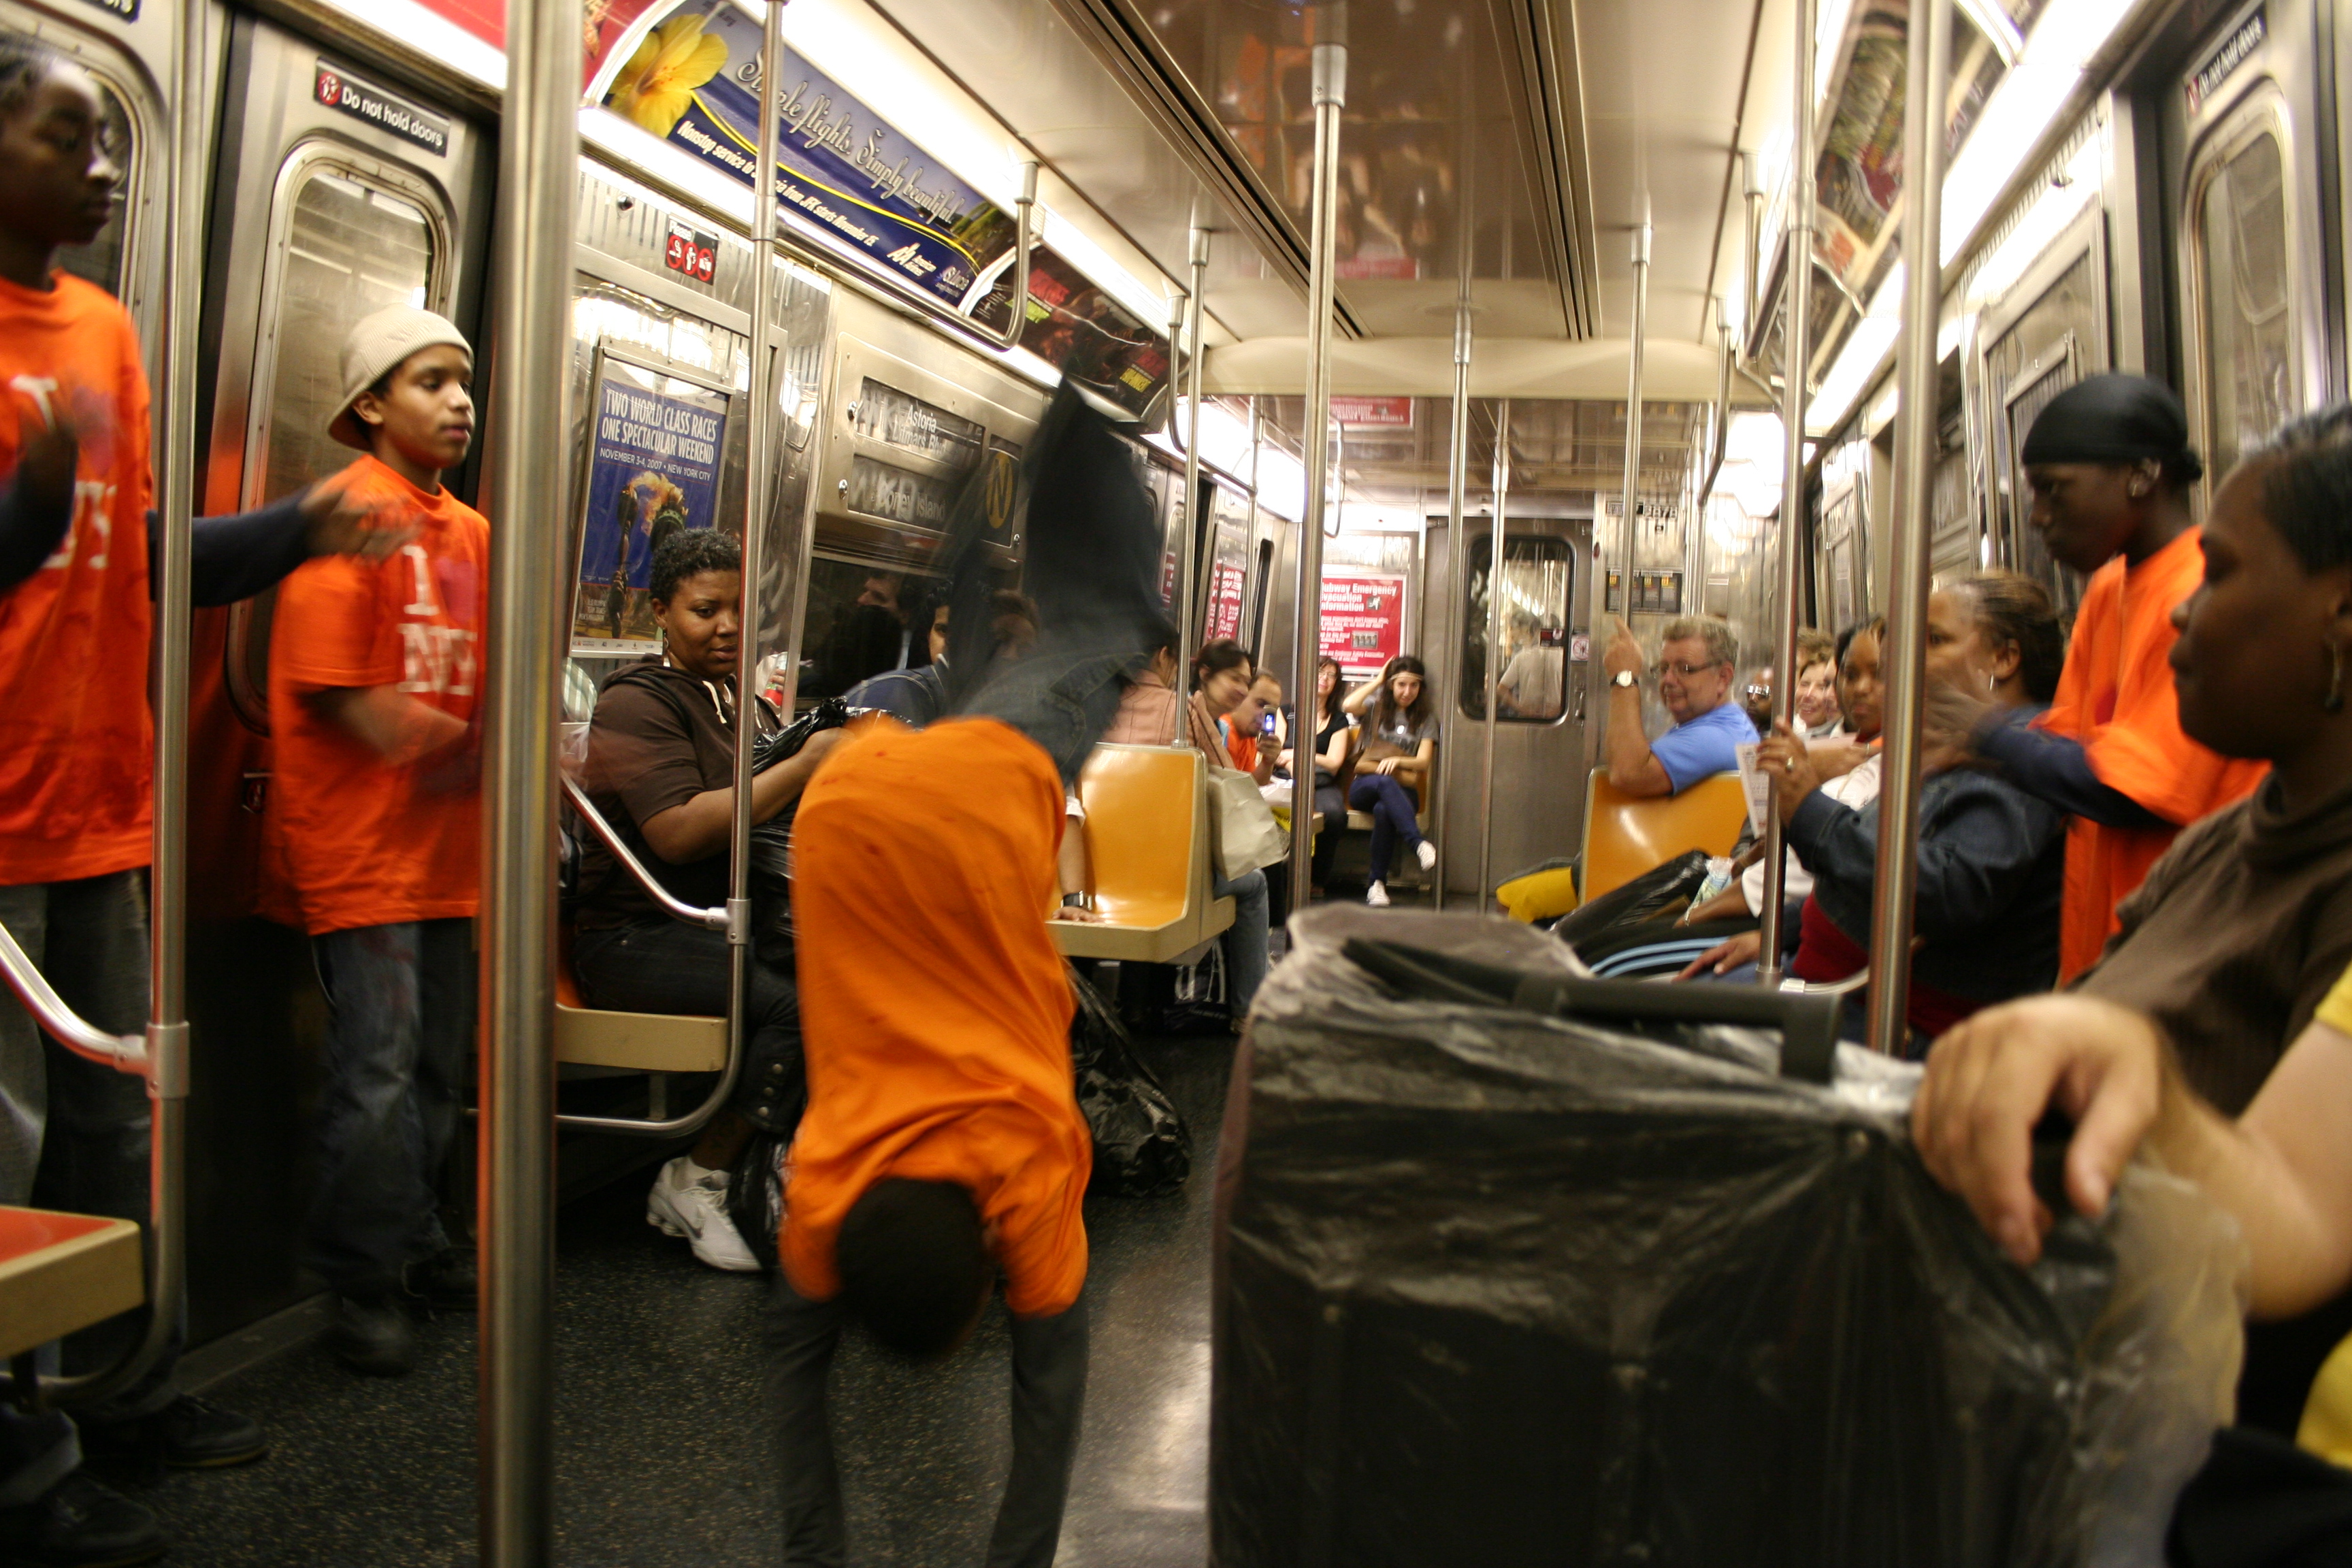 Subway Breakdancing Arrests Up 4700% Since Last Year